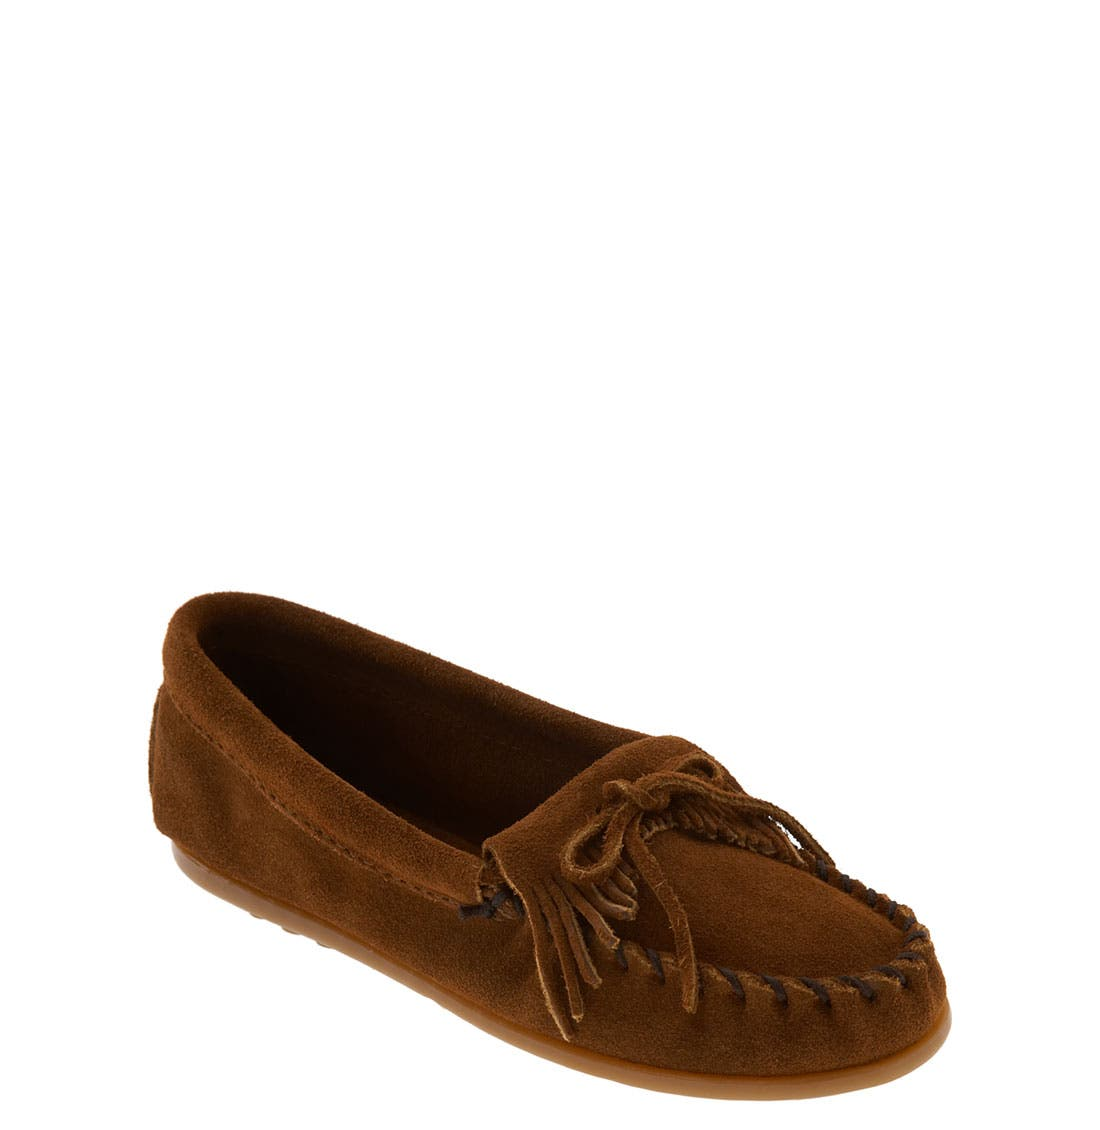 Main Image - Minnetonka Kiltie Moccasin (Walker, Toddler, Little Kid & Big Kid)